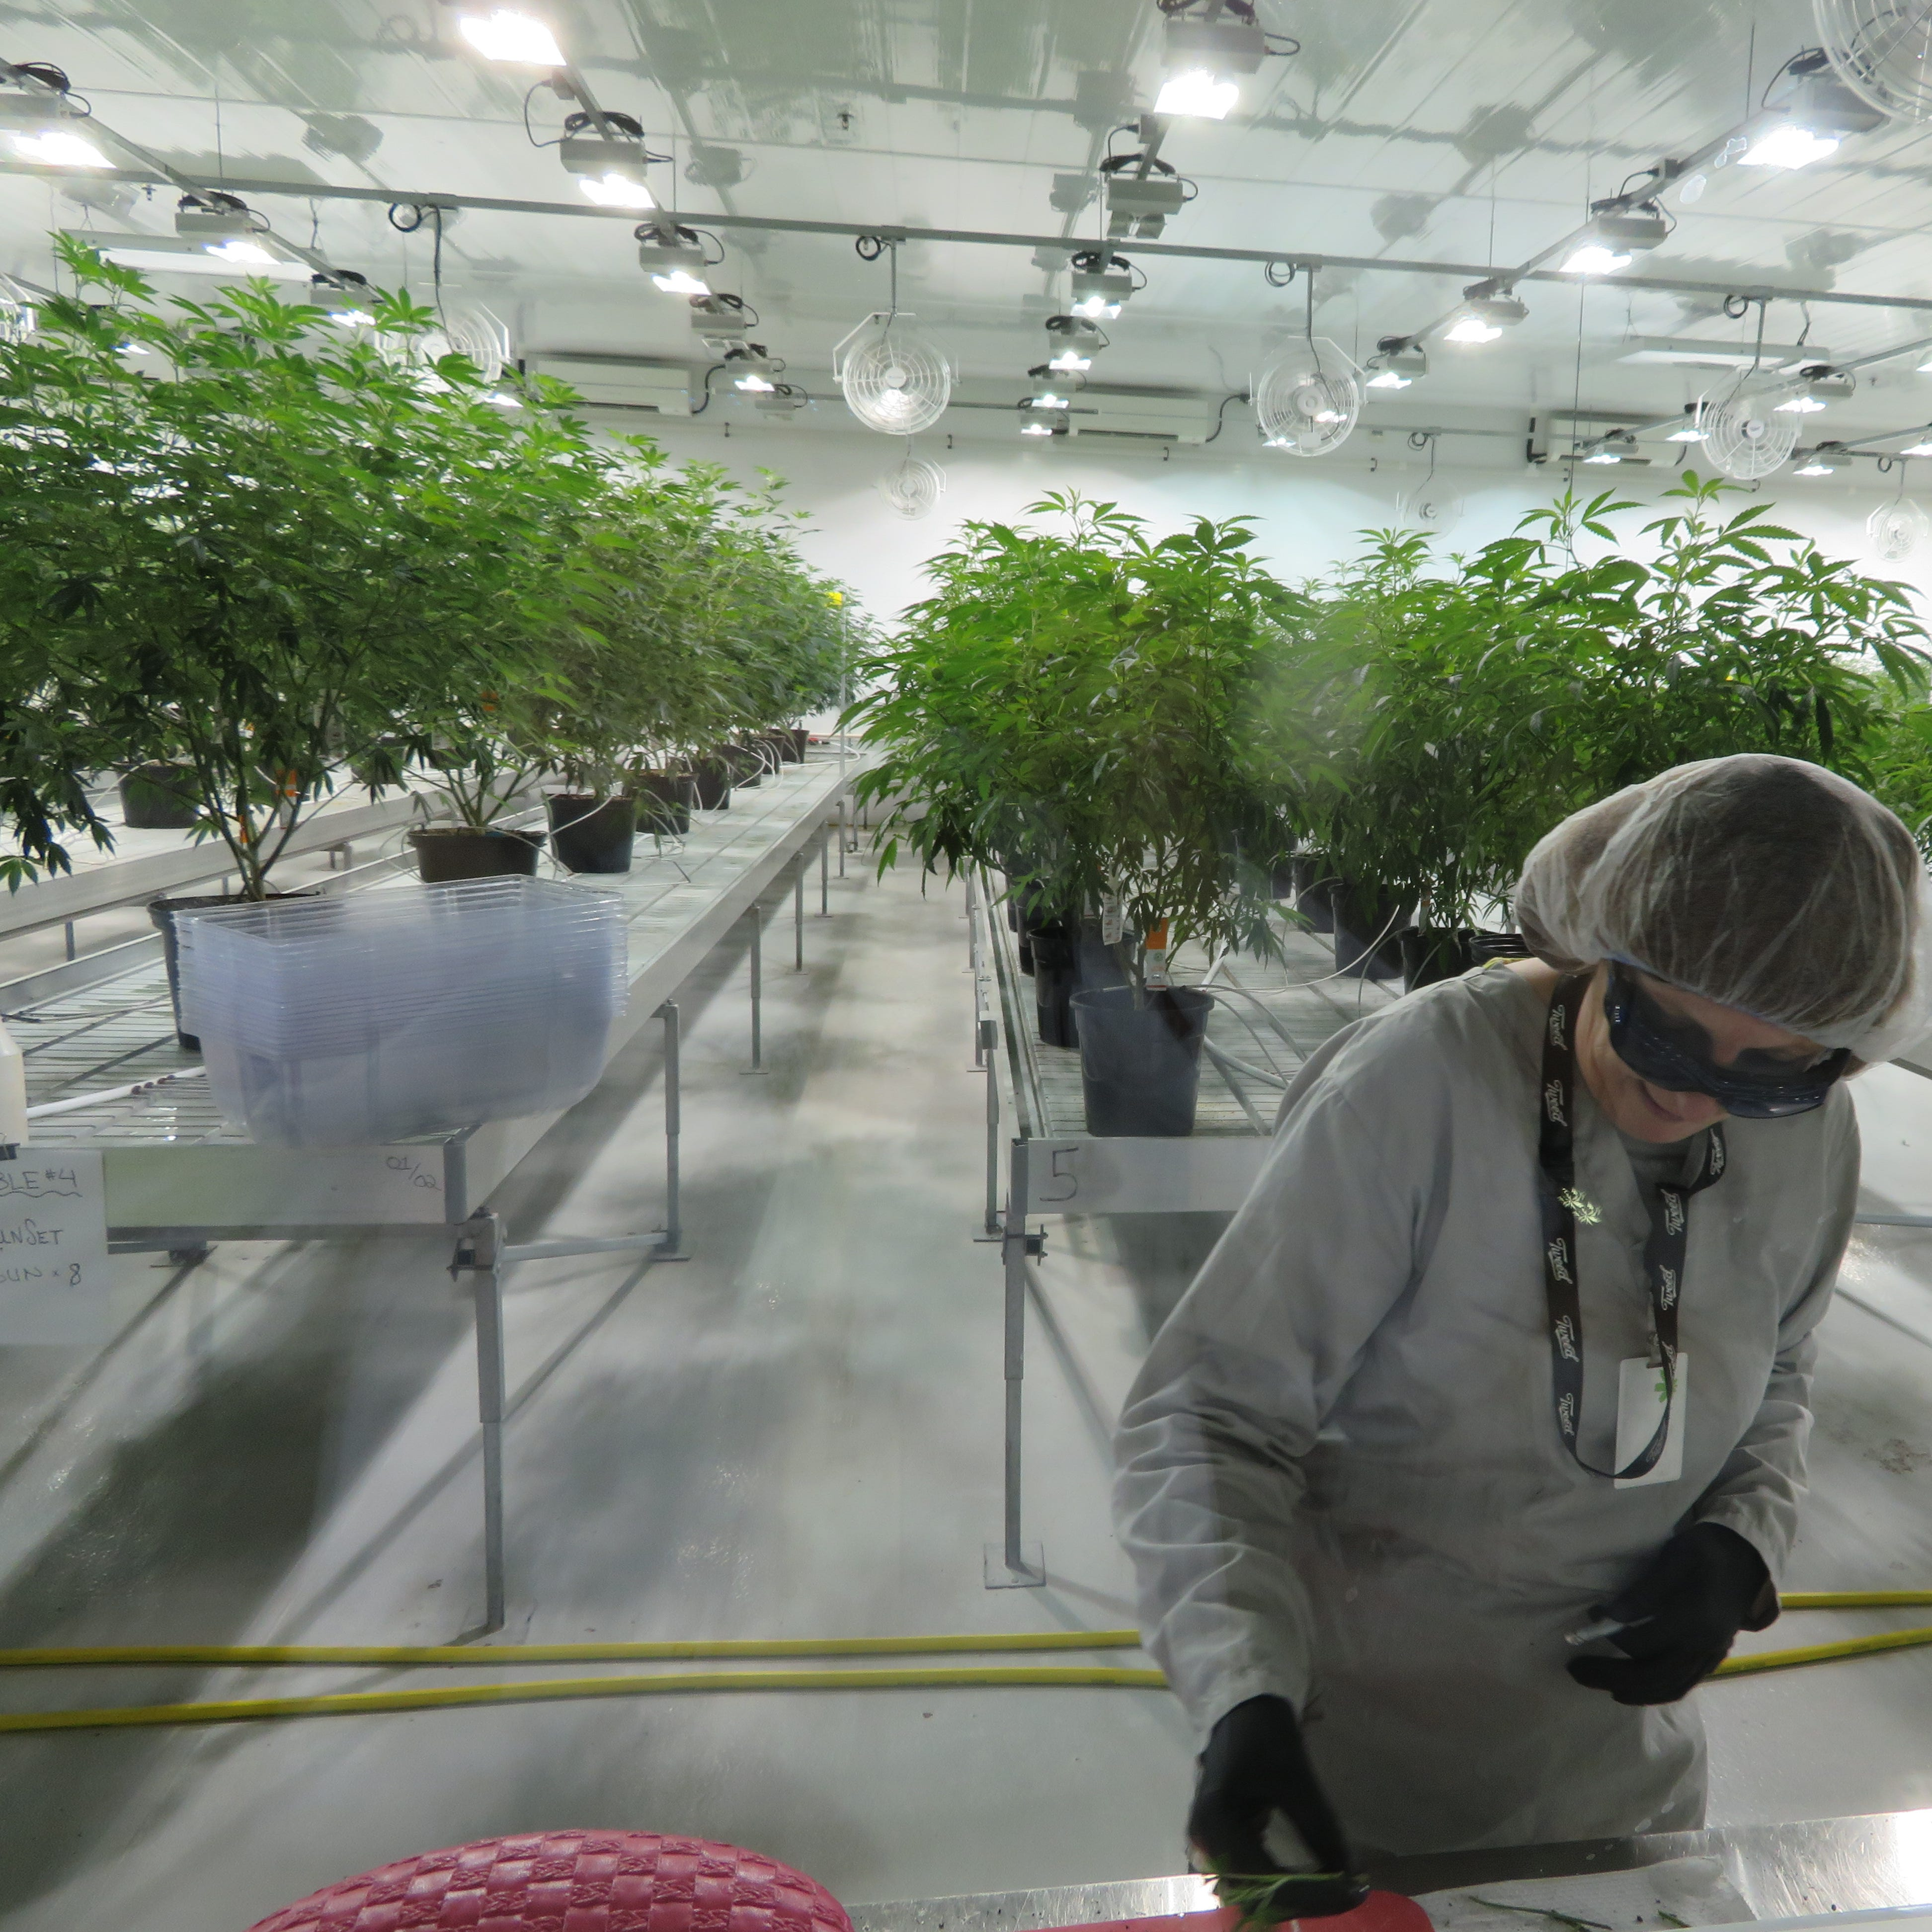 Broome's prospective cannabis player sets the stage for major U.S. operation